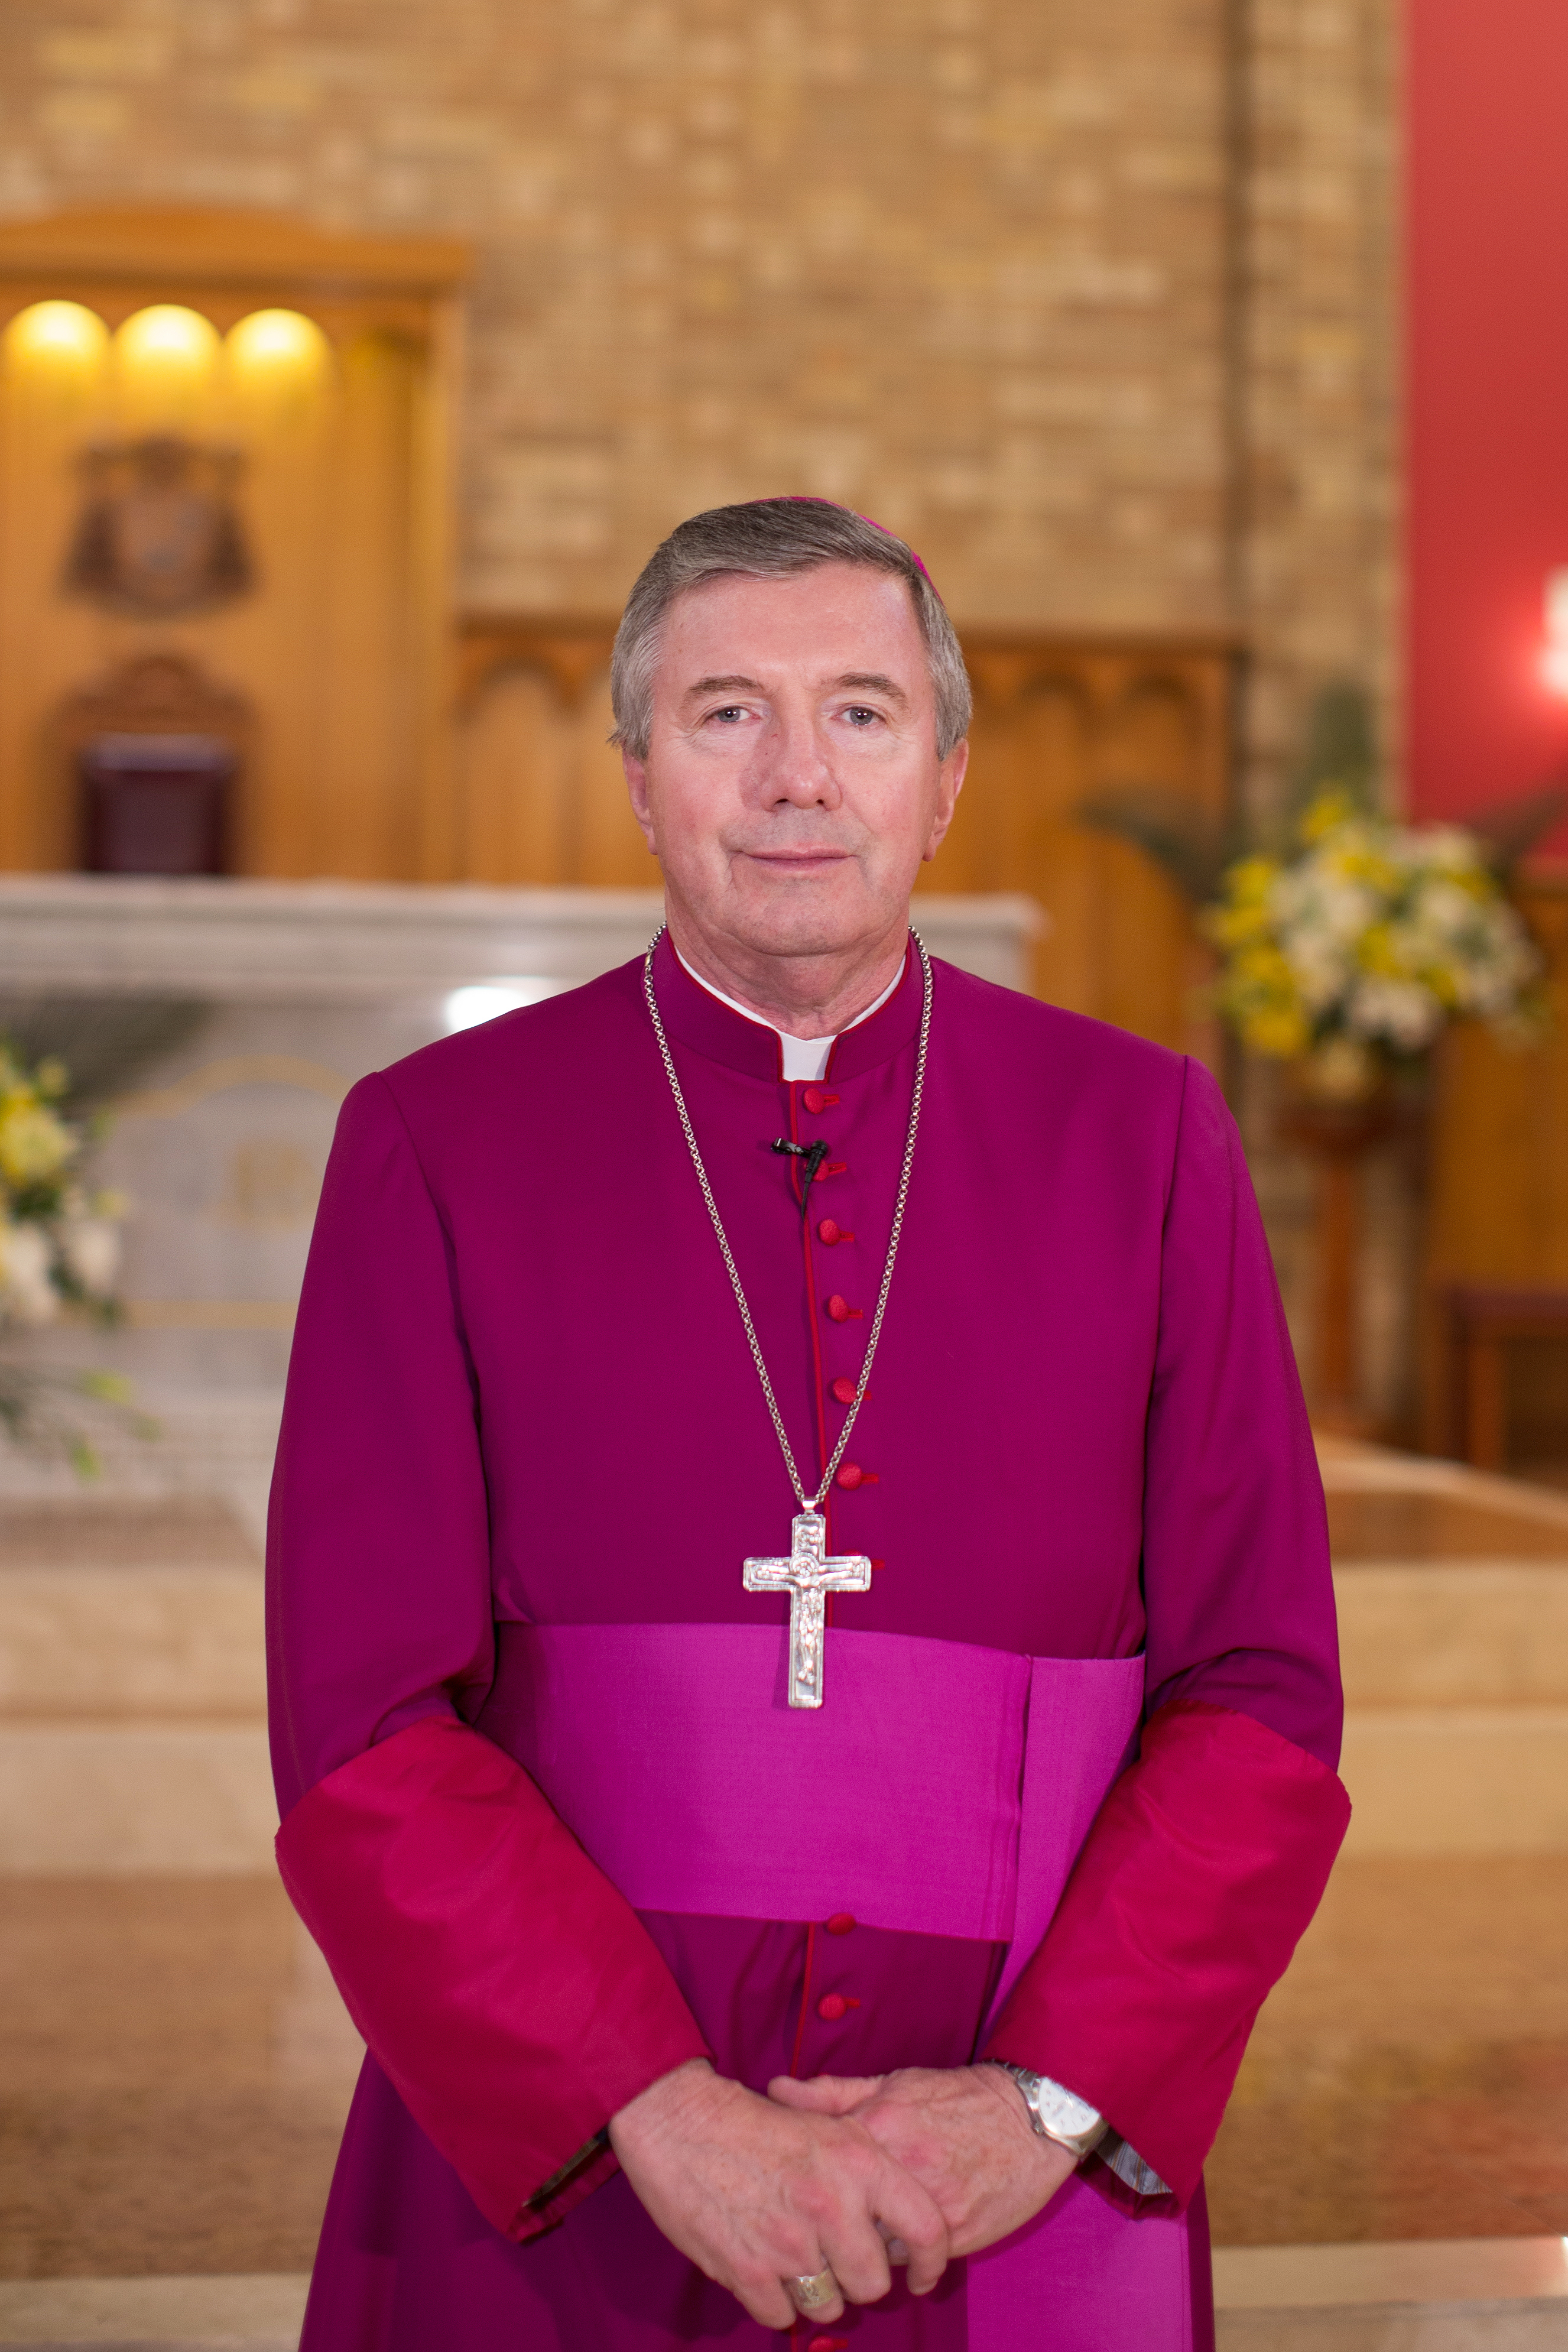 The Apostolic Administrator of Wagga, Archbishop Prowse